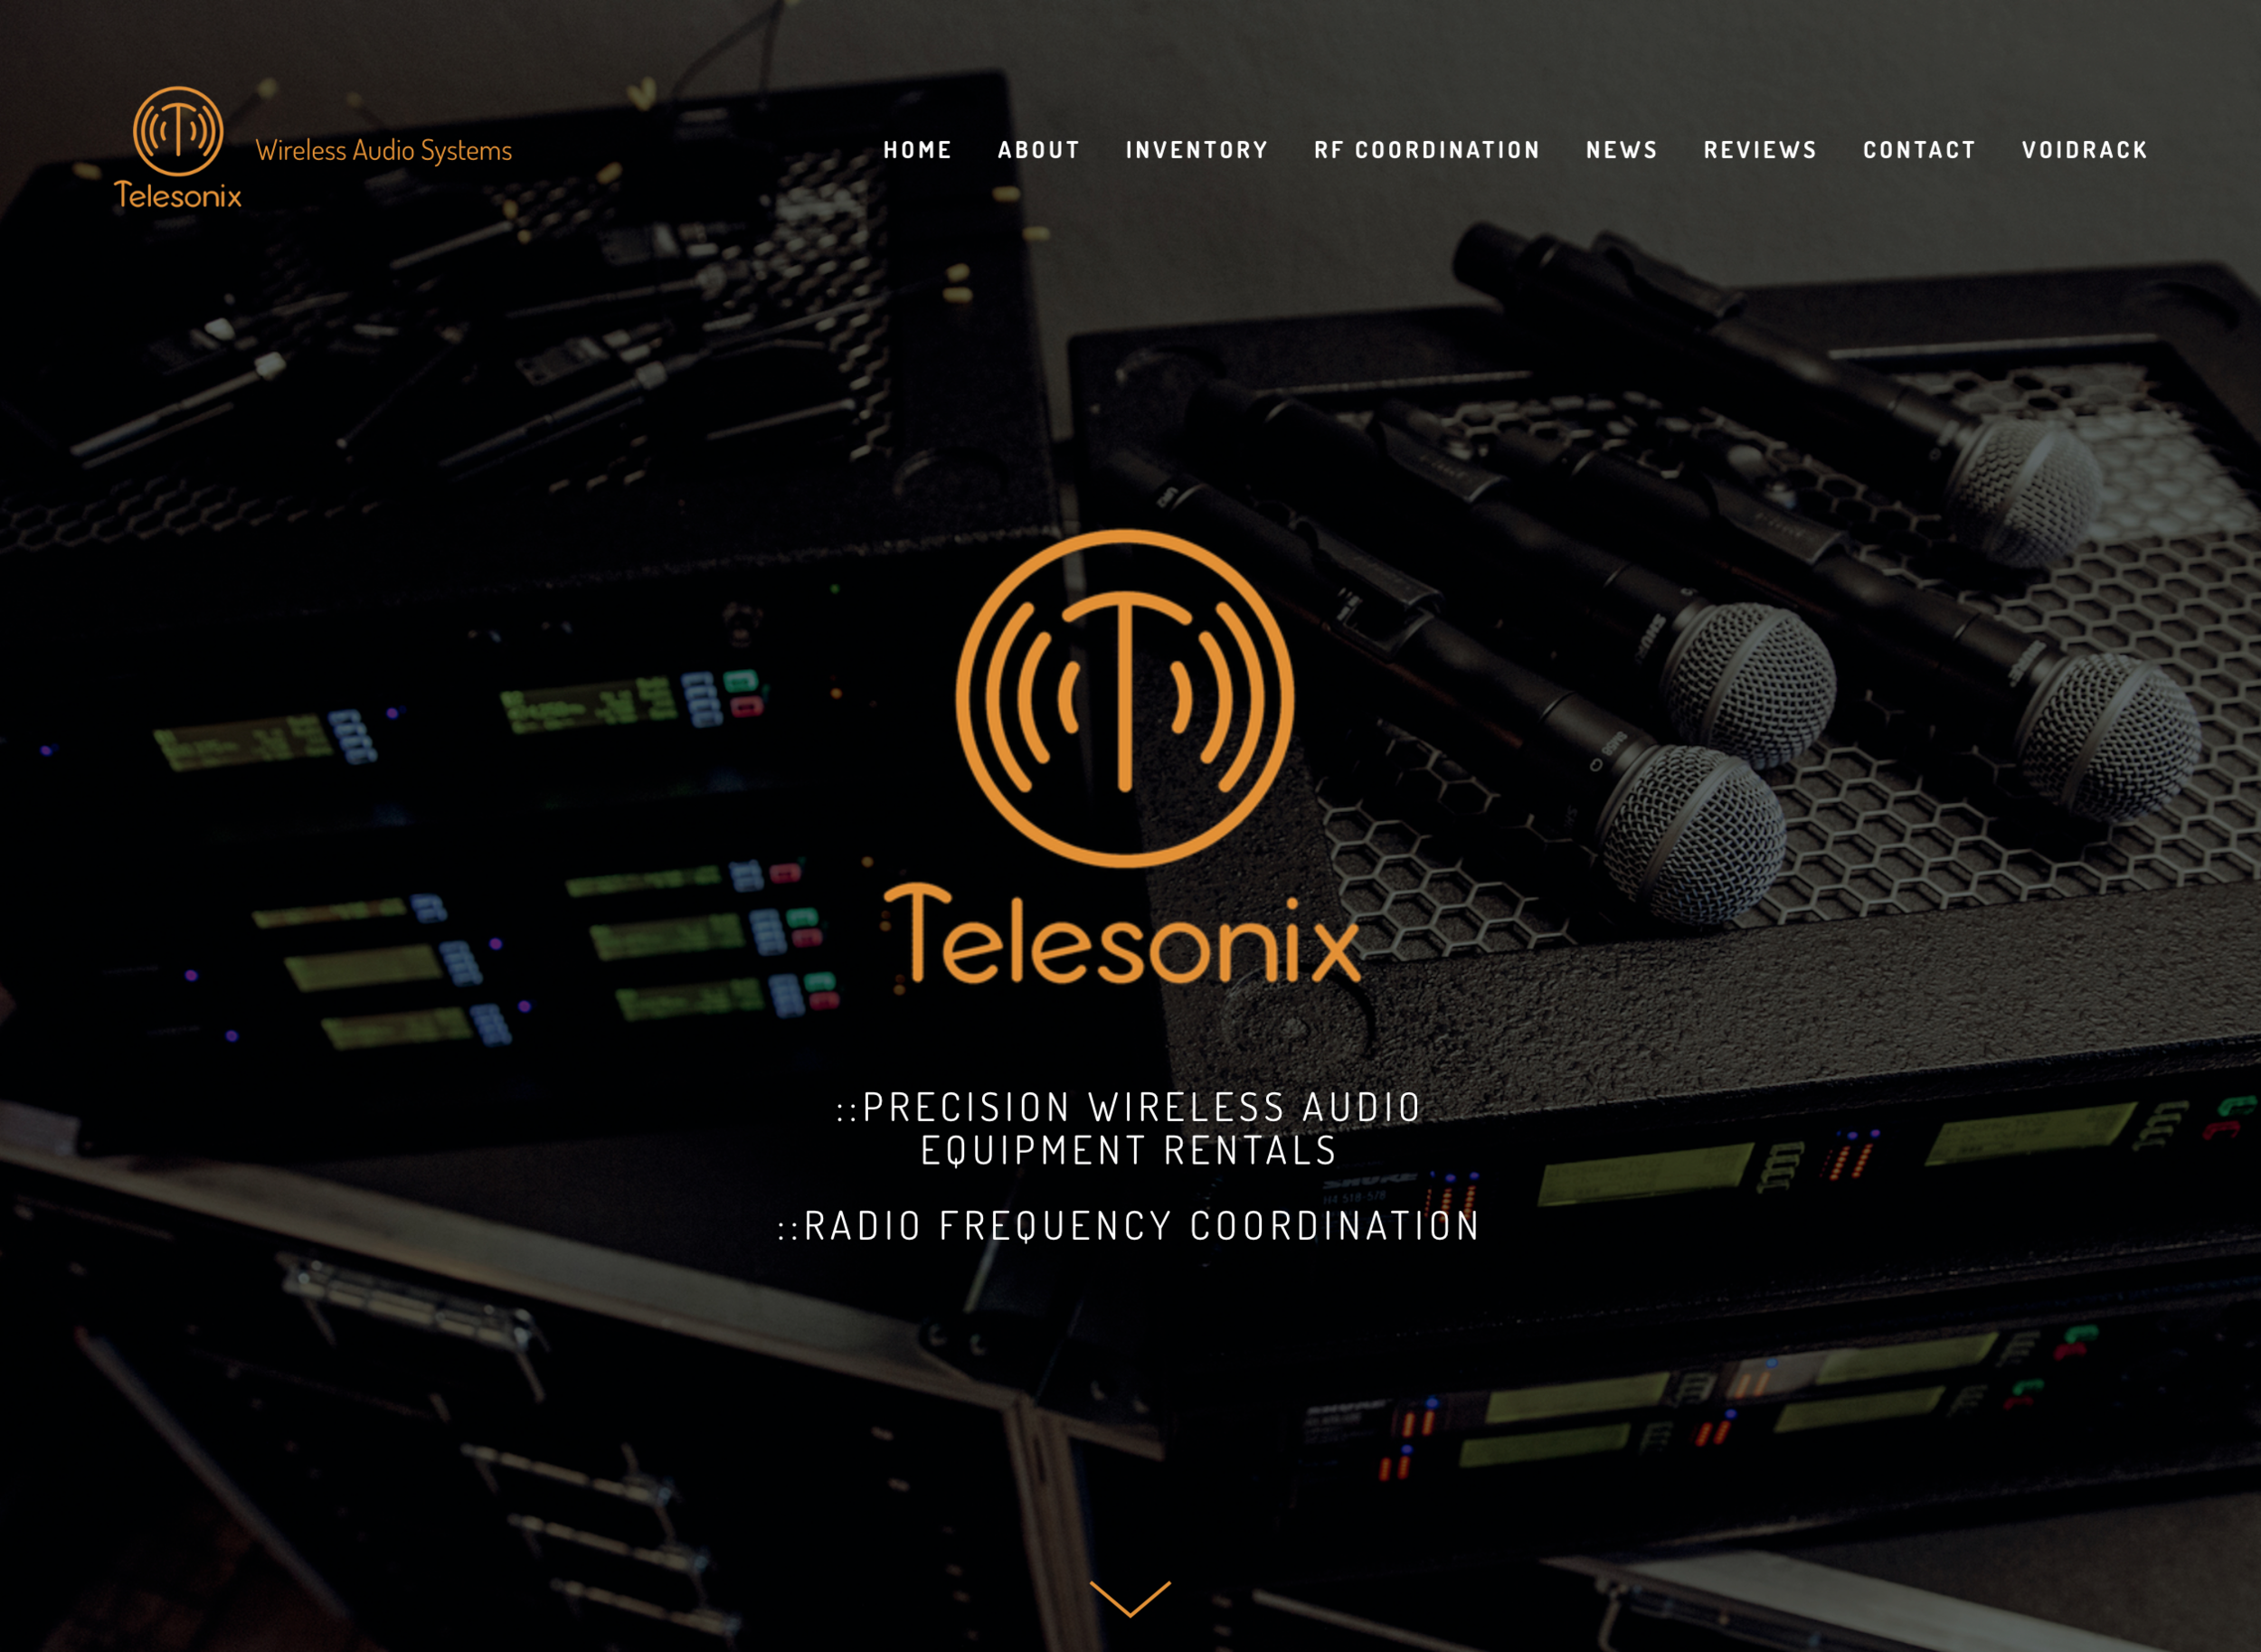 Business Website Rebrand | Parallax | Mobile Responsive | Graphic Design New Branding Telesonix Ad Website Admin: Current Based in Los Angeles, CA